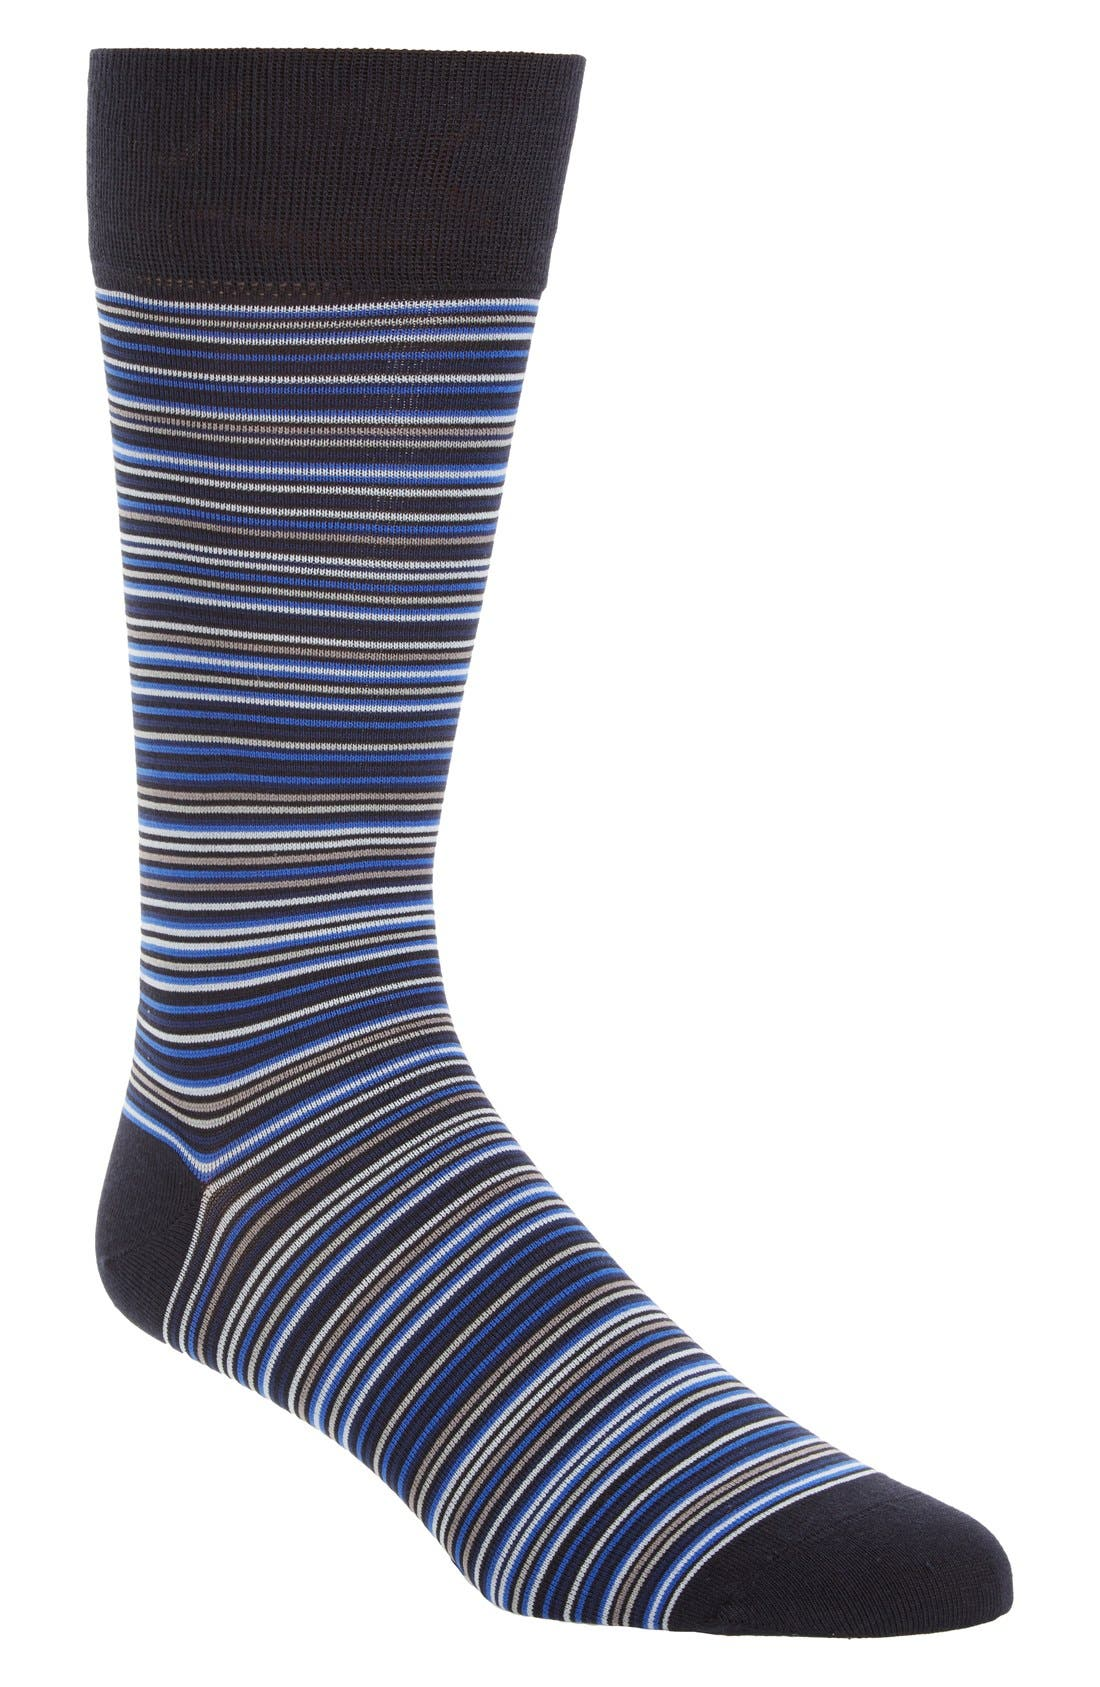 Multistripe Crew Socks,                             Main thumbnail 1, color,                             Navy